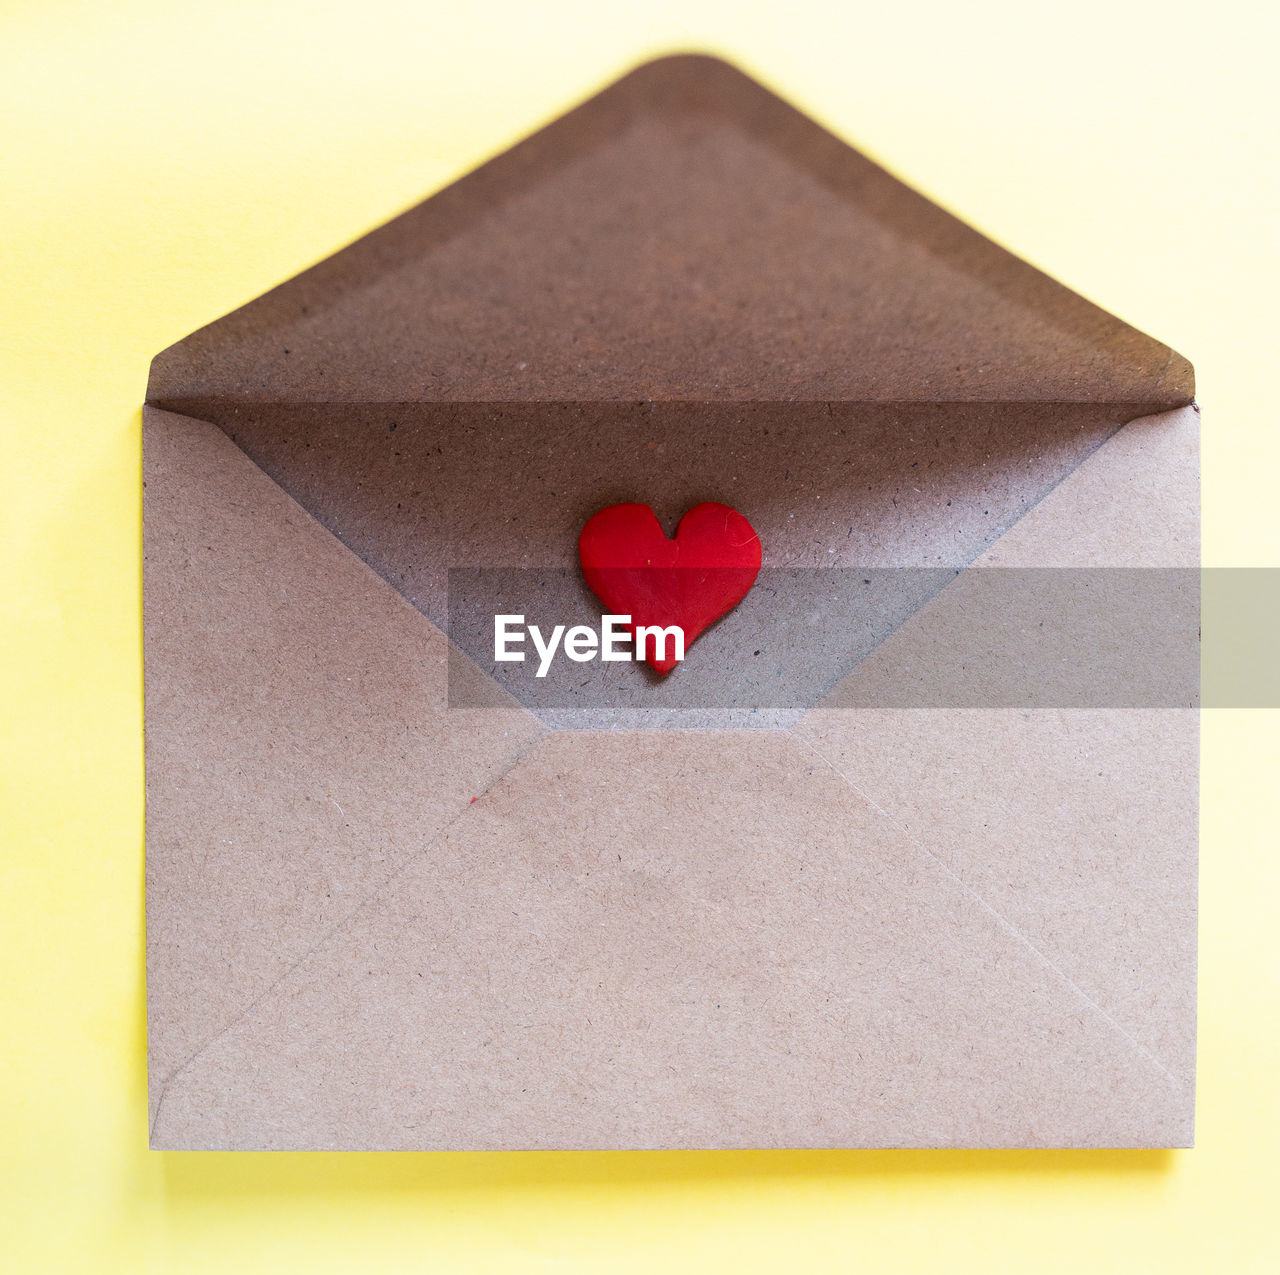 CLOSE-UP OF HEART SHAPE MADE FROM PAPER